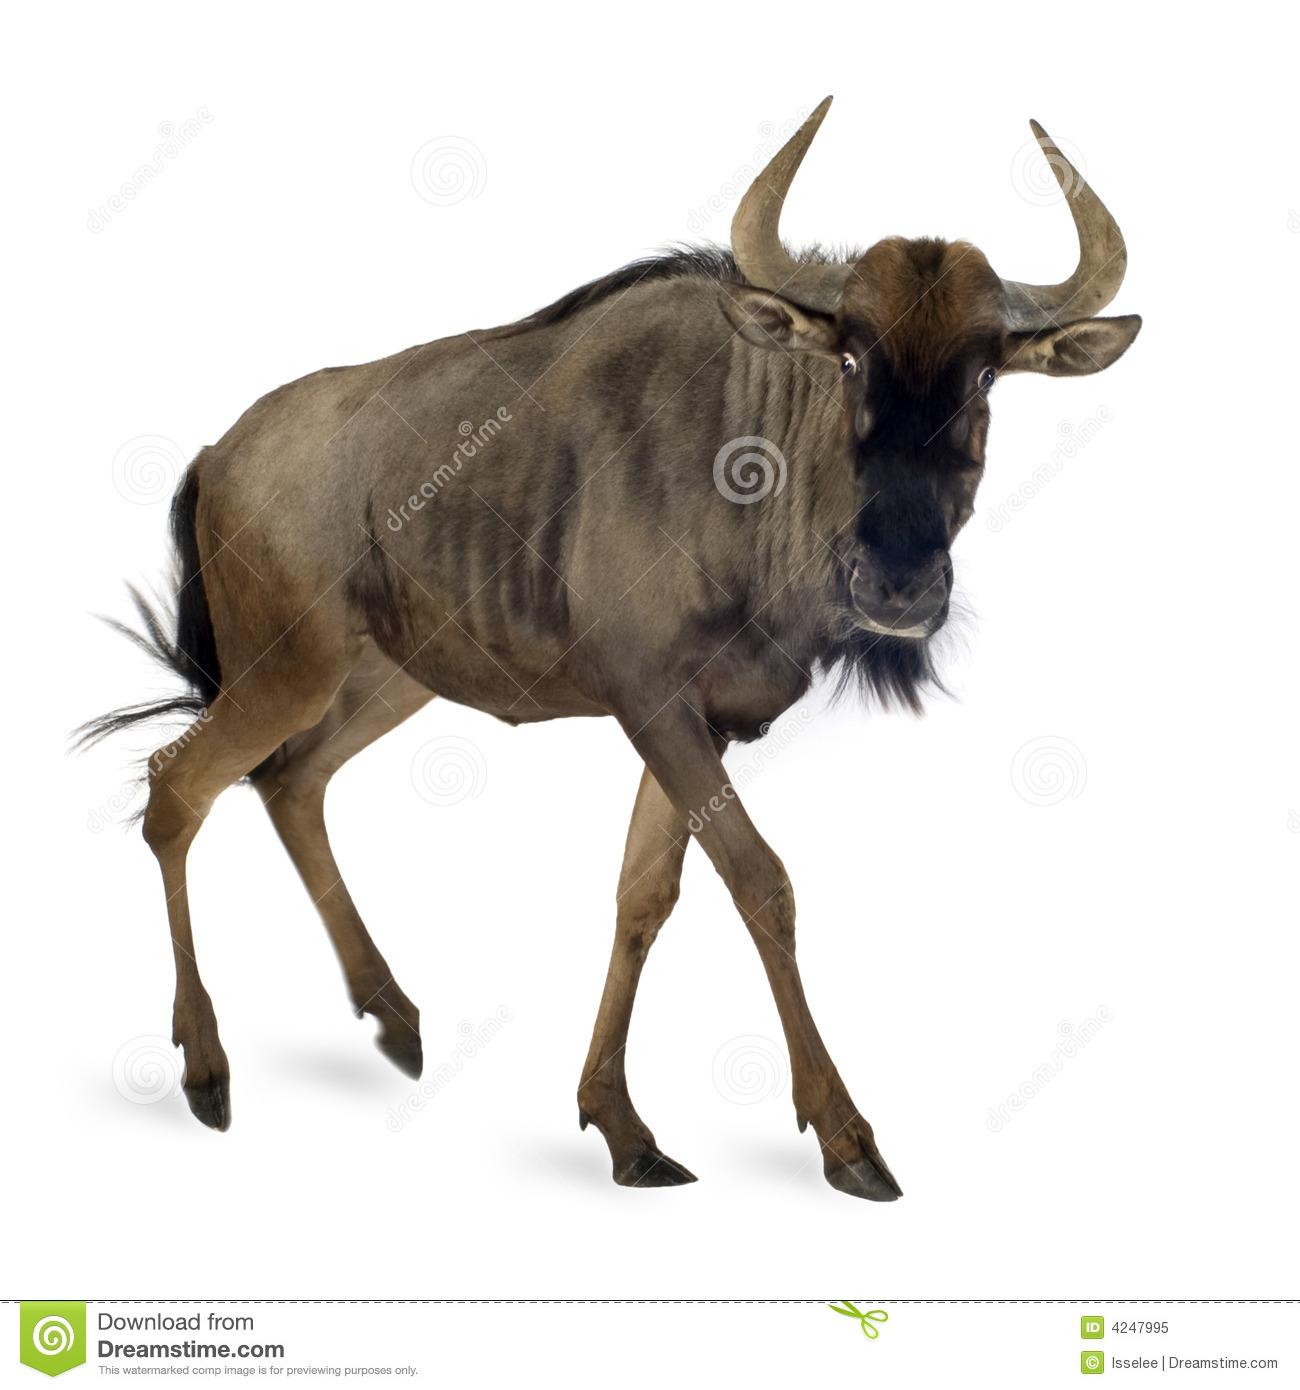 Blue Wildebeest clipart #11, Download drawings